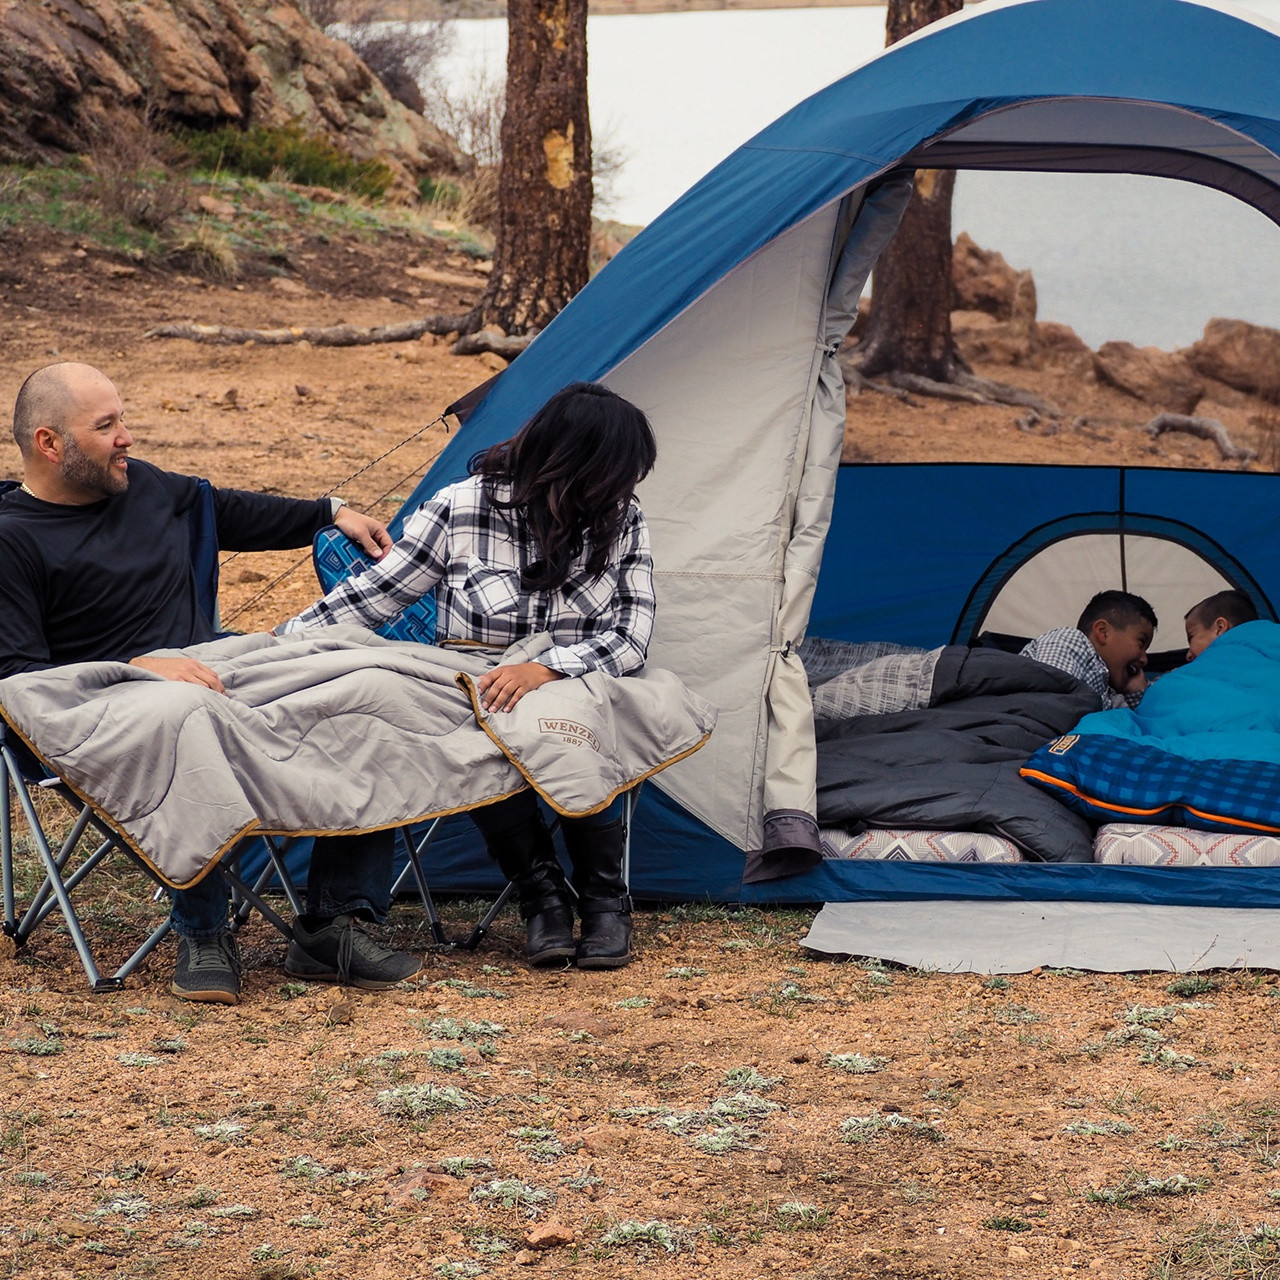 Campers with their Wenzel Tamarack 6 Person Dome Tent in the woods